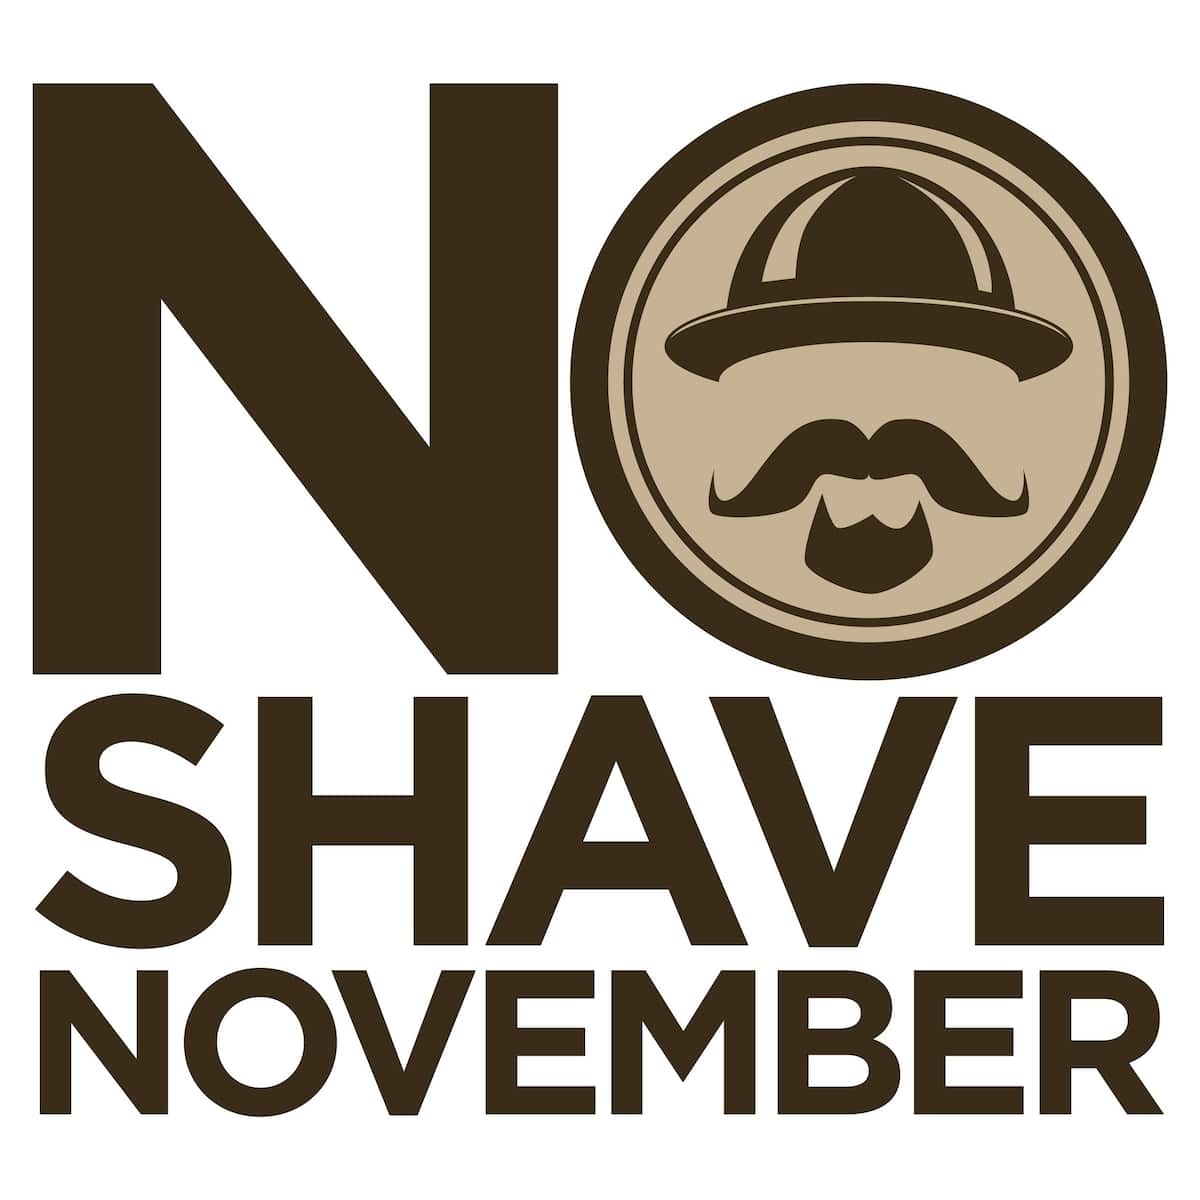 No Shave November- 7 facts you should know purpose of no shave november no shave november meaning no shave november girls